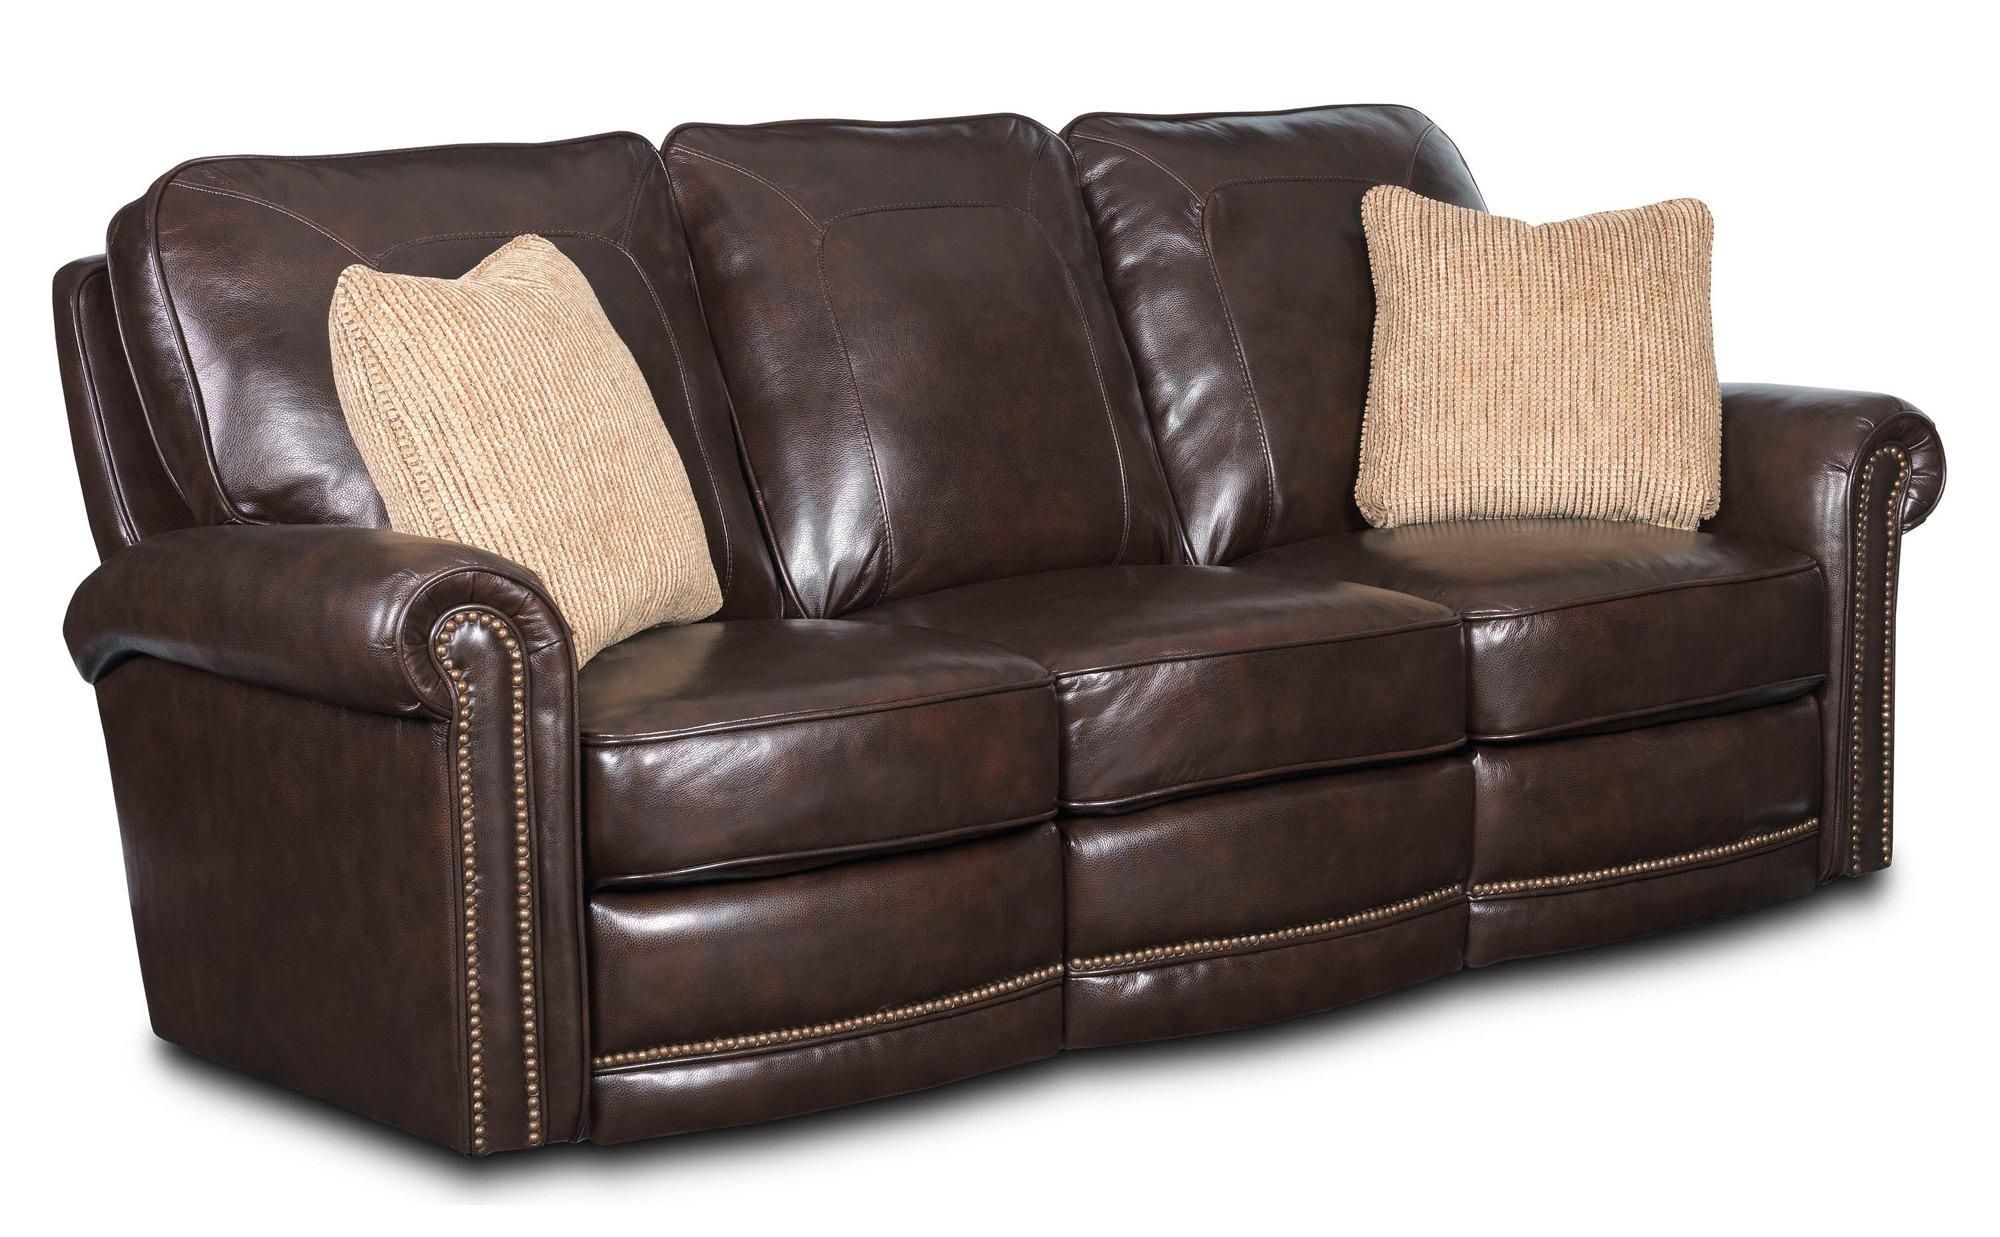 broyhill leather sofa sets bed toronto cheap furniture black